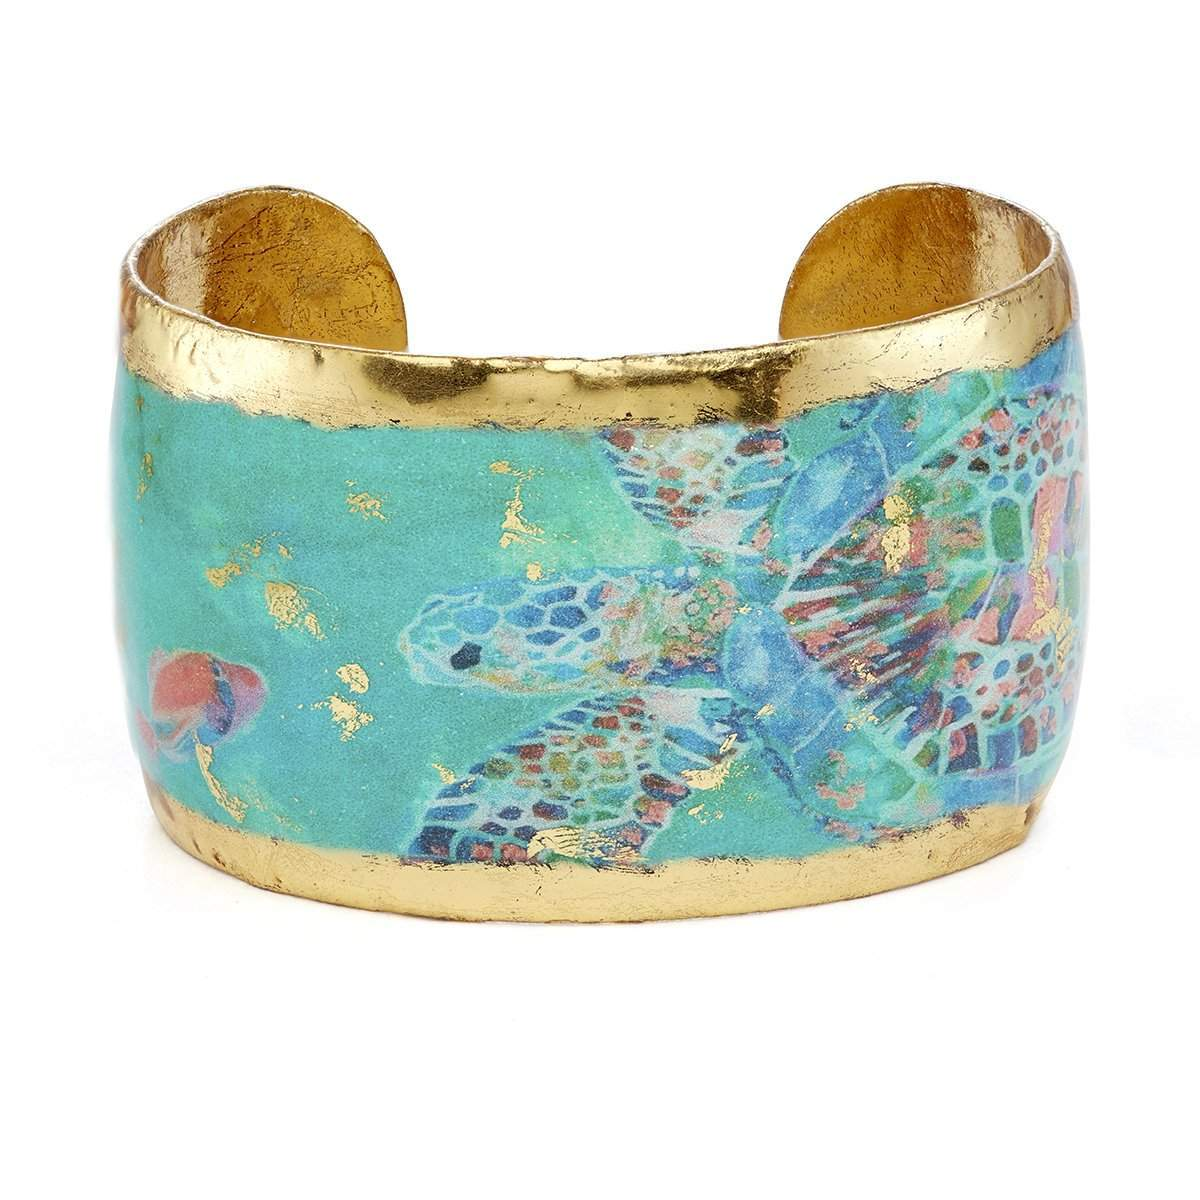 "Green Mosaic Sea Turtle 1.5"" Gold Cuff - OC144-5-Evocateur-Renee Taylor Gallery"